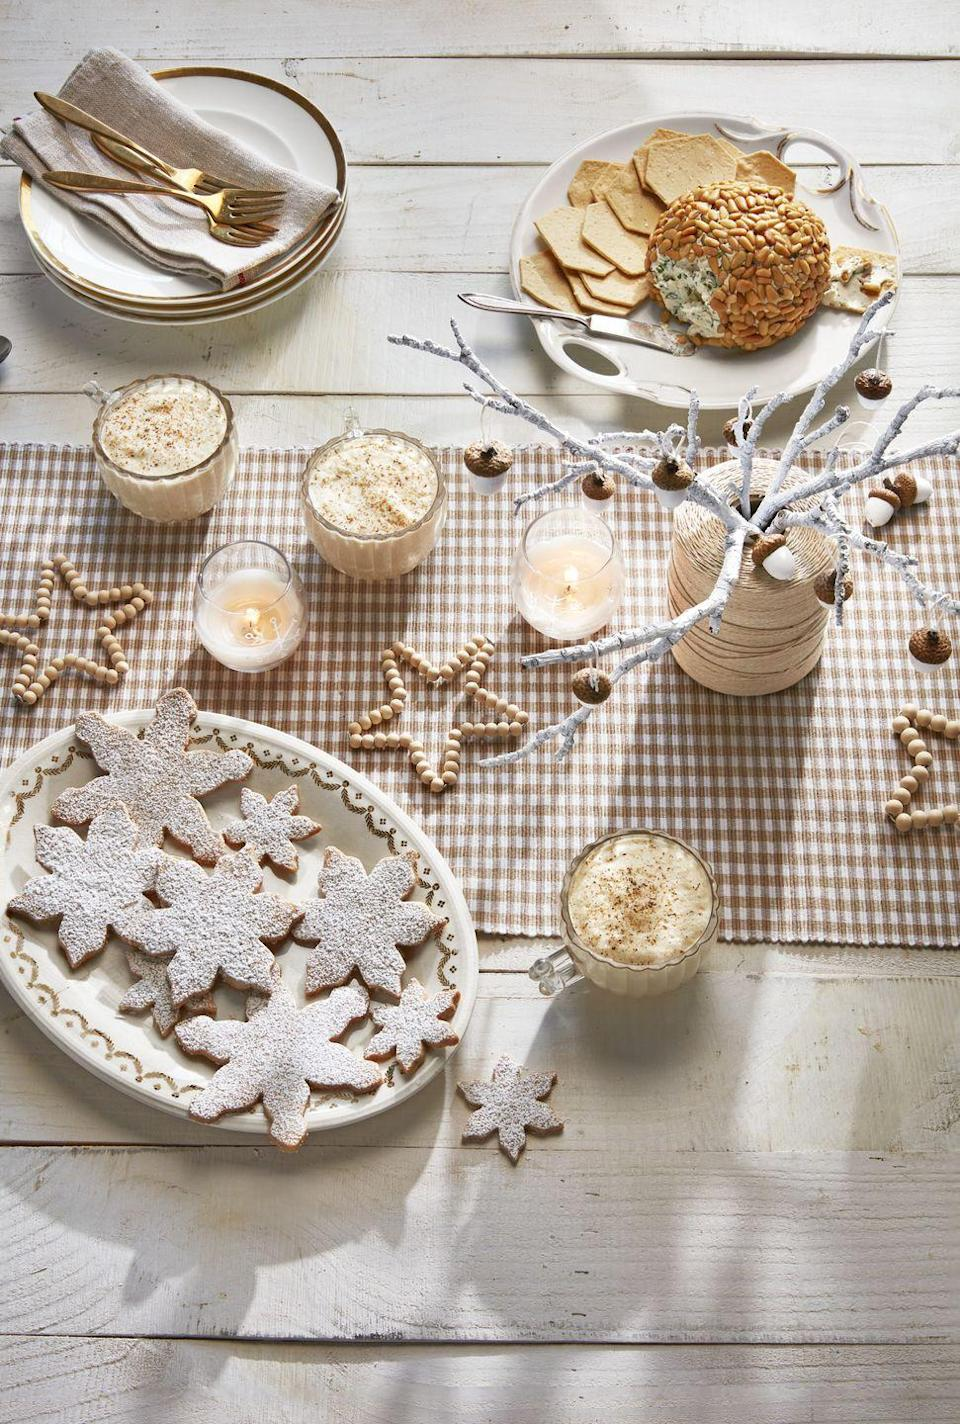 """<p>Take a cue from Scandinavian style and give your party an understated feel! Here, white branches sit pretty in a spool of natural twine, and the muted colors of <a href=""""https://www.countryliving.com/food-drinks/g647/holiday-cookies-1208/"""" rel=""""nofollow noopener"""" target=""""_blank"""" data-ylk=""""slk:Christmas cookies"""" class=""""link rapid-noclick-resp"""">Christmas cookies</a> and eggnog more than make up for the lack of bright reds and greens.</p><p><a class=""""link rapid-noclick-resp"""" href=""""https://www.amazon.com/BronaGrand-100pcs-Natural-Jewelry-Findings/dp/B01LQIJMX0?tag=syn-yahoo-20&ascsubtag=%5Bartid%7C10050.g.2218%5Bsrc%7Cyahoo-us"""" rel=""""nofollow noopener"""" target=""""_blank"""" data-ylk=""""slk:SHOP WOODEN BEADS"""">SHOP WOODEN BEADS</a></p>"""